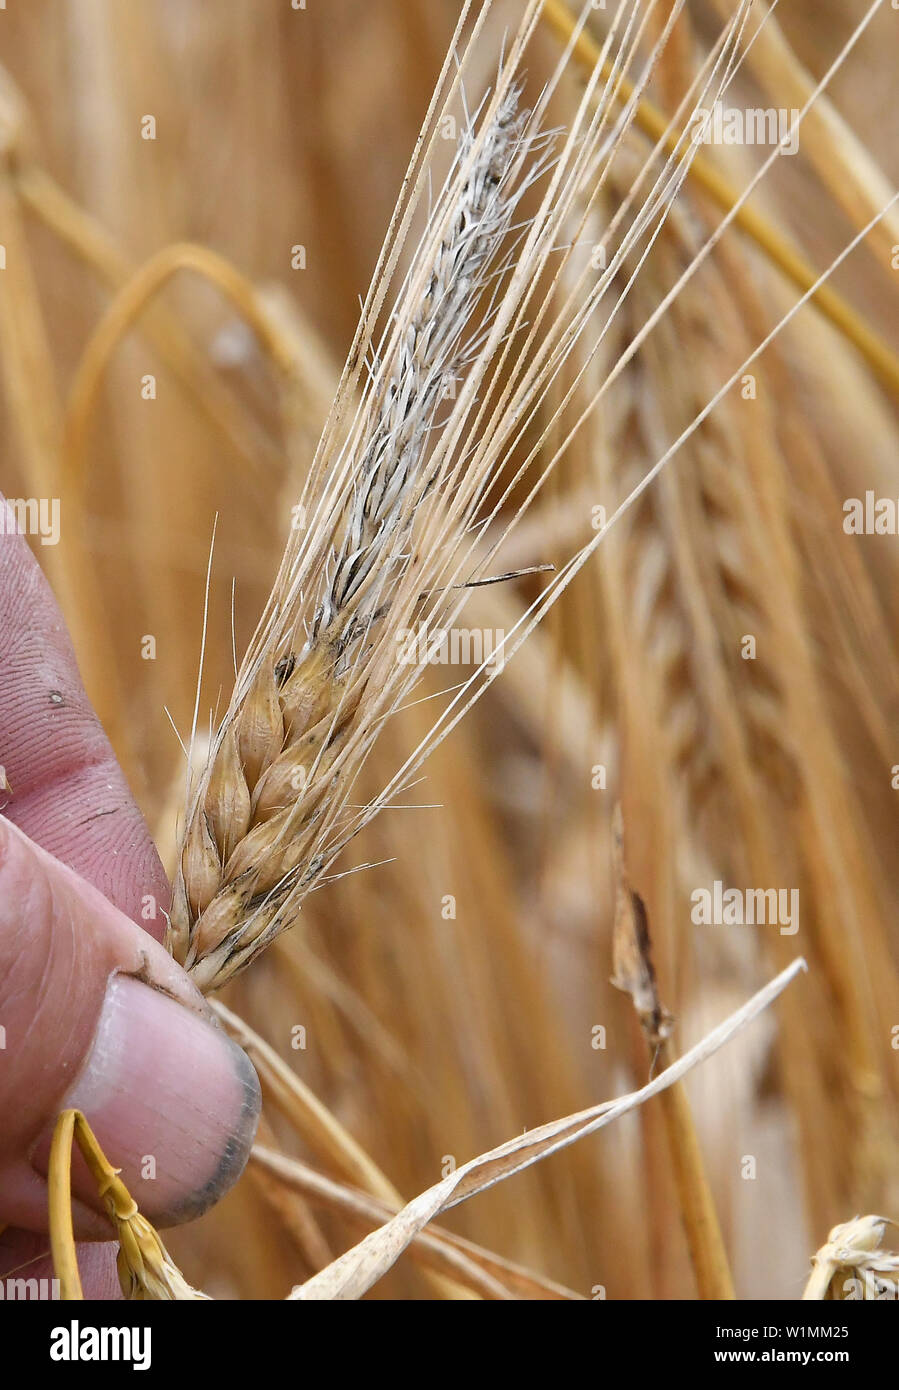 03 July 2019, Brandenburg, Dallgow-Döberitz: Winter barley grows at the press conference to start harvesting on a Brandenburg farm. Due to late frosts and drought, large harvest losses are expected. Photo: Bernd Settnik/dpa-Zentralbild/dpa - Stock Image